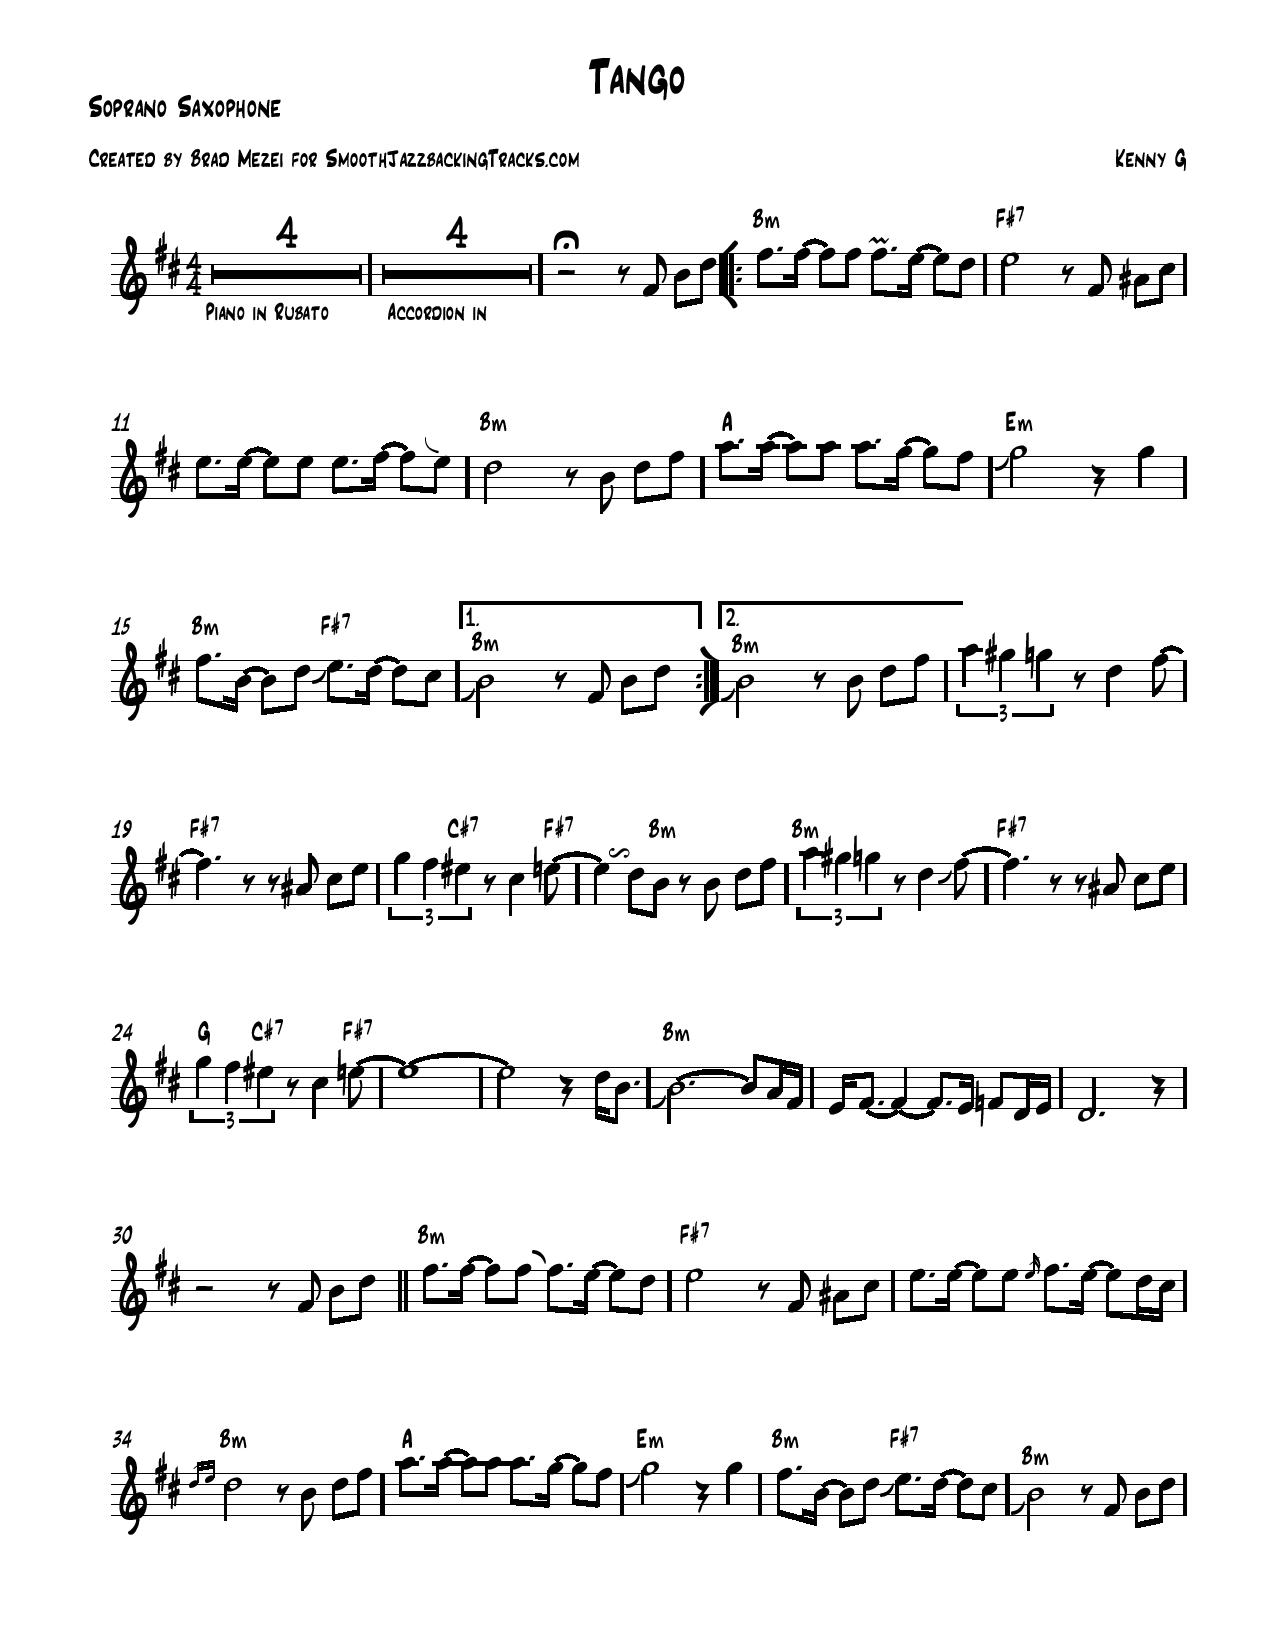 Smooth jazz sax solo sheet music k m chords included hexwebz Choice Image